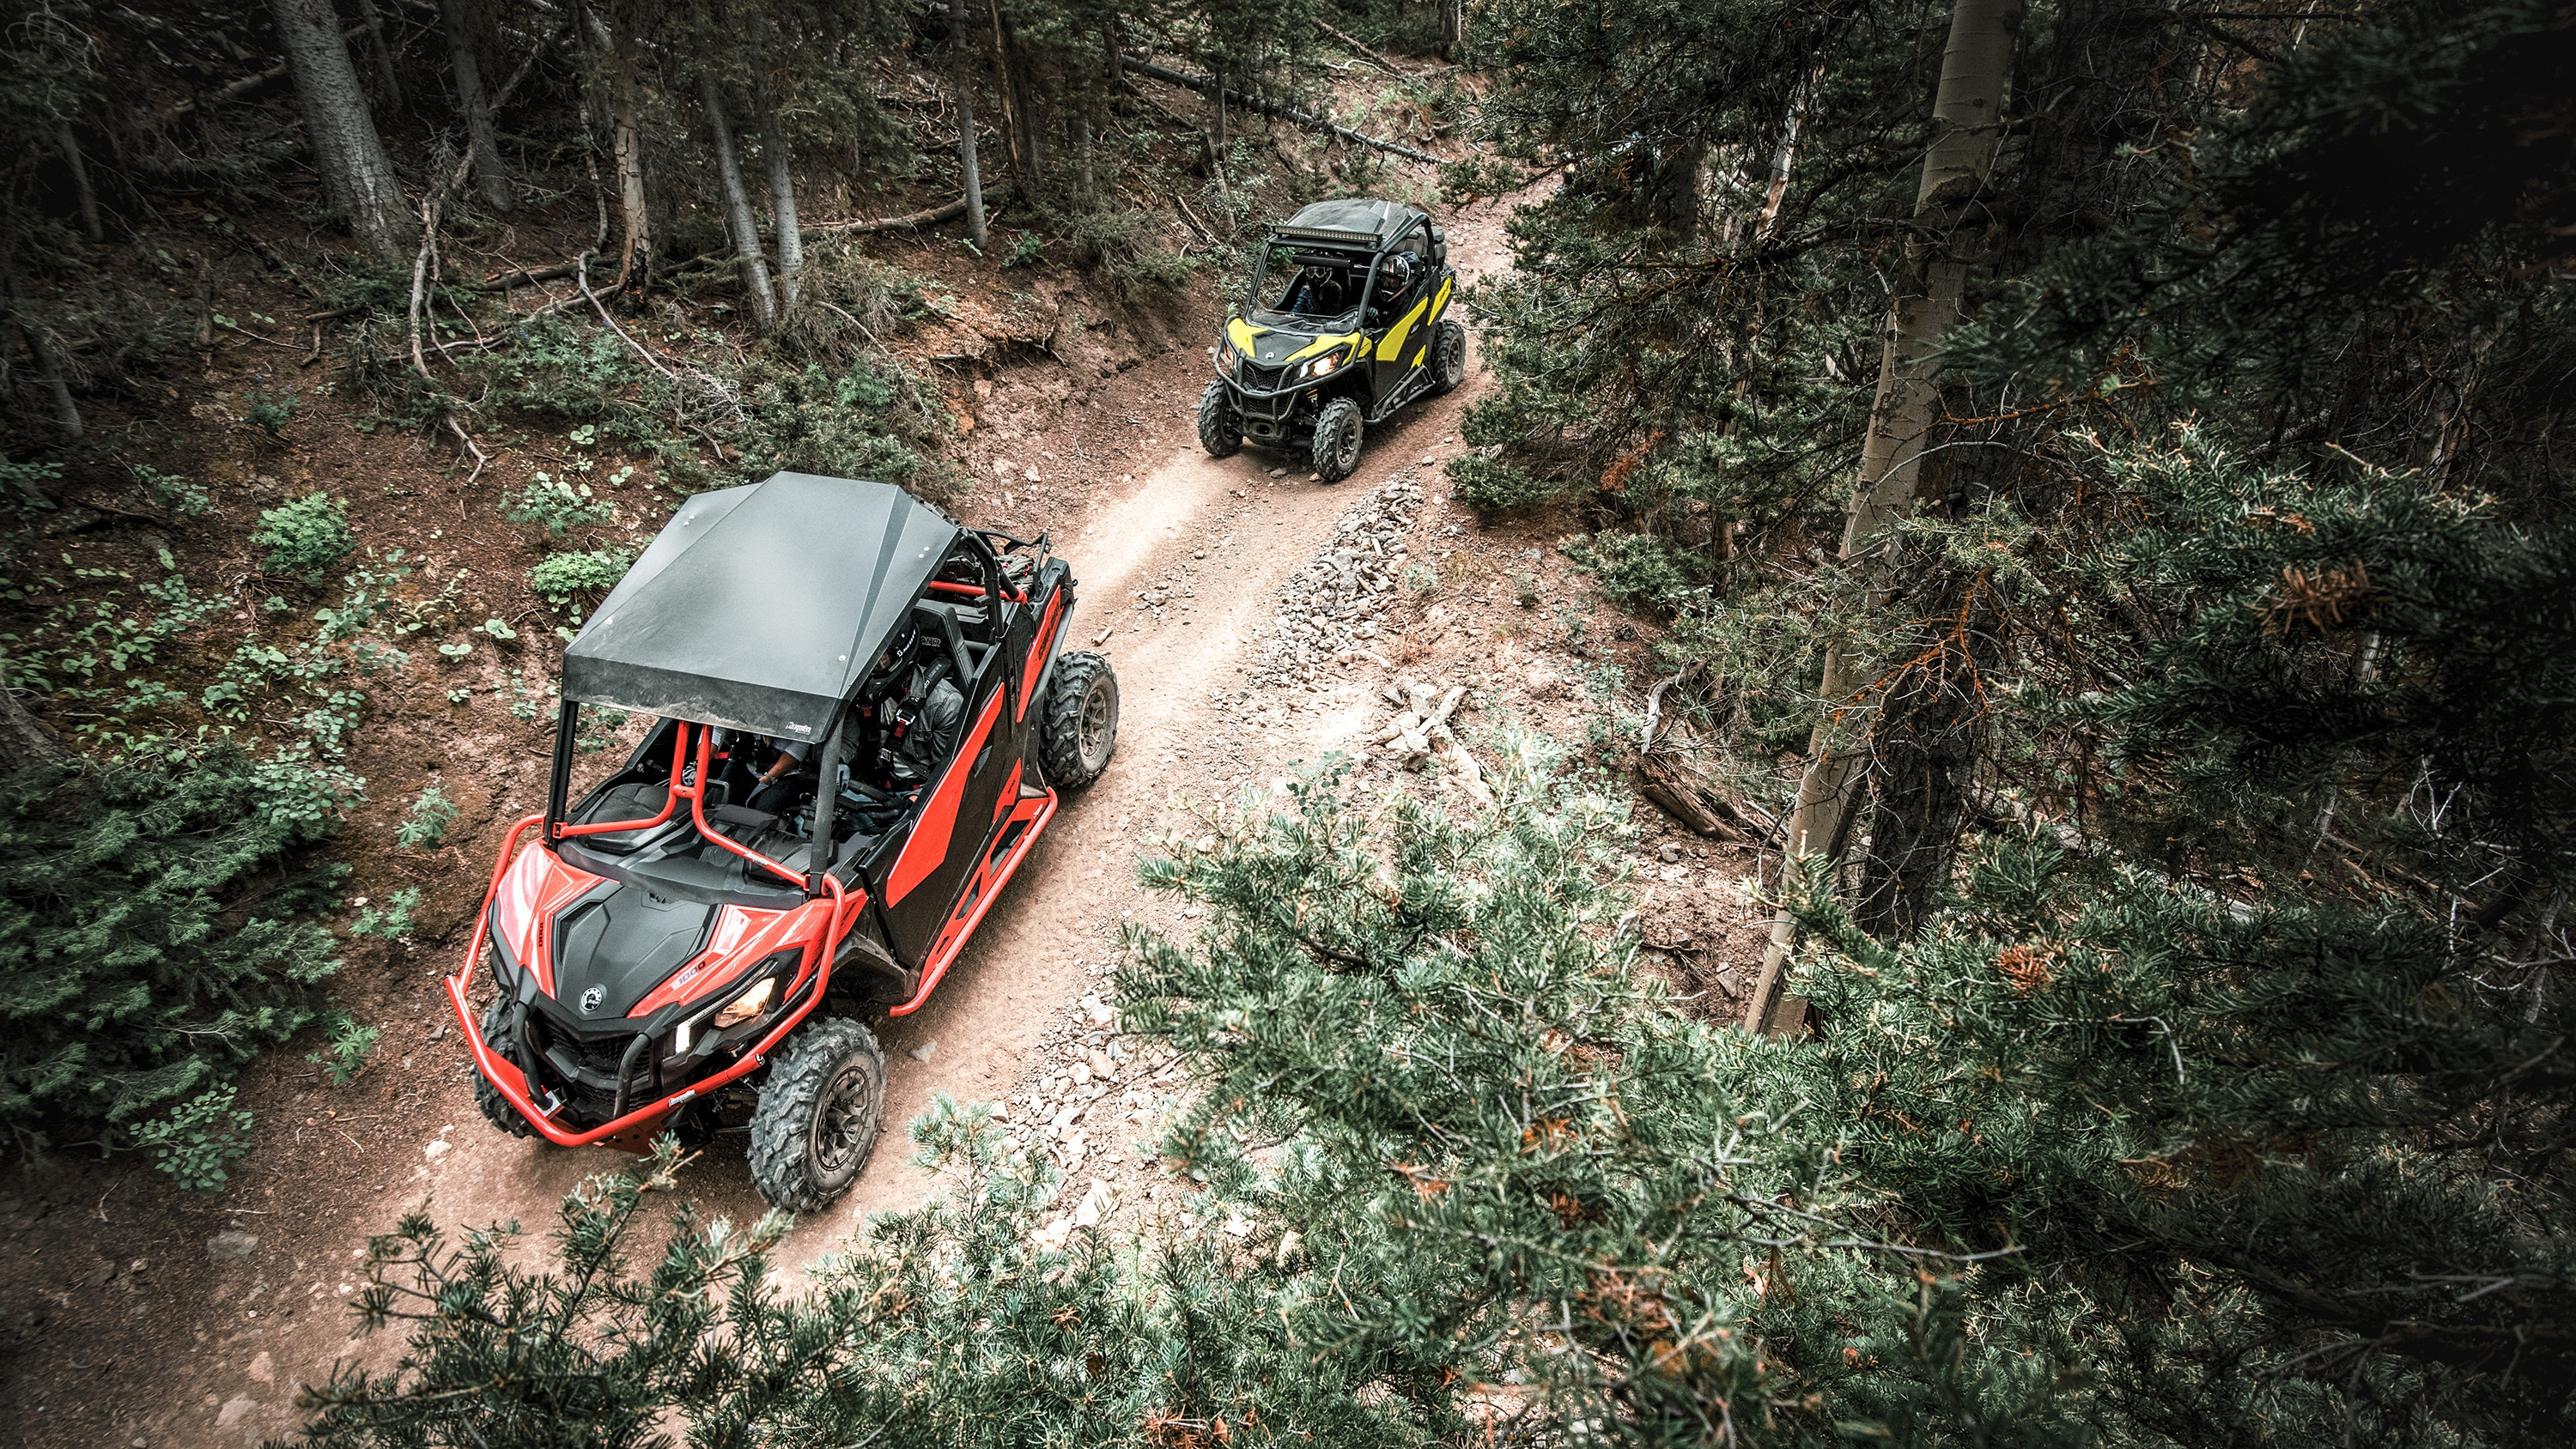 Pair of Maverick Trail moving in a dense forest trail